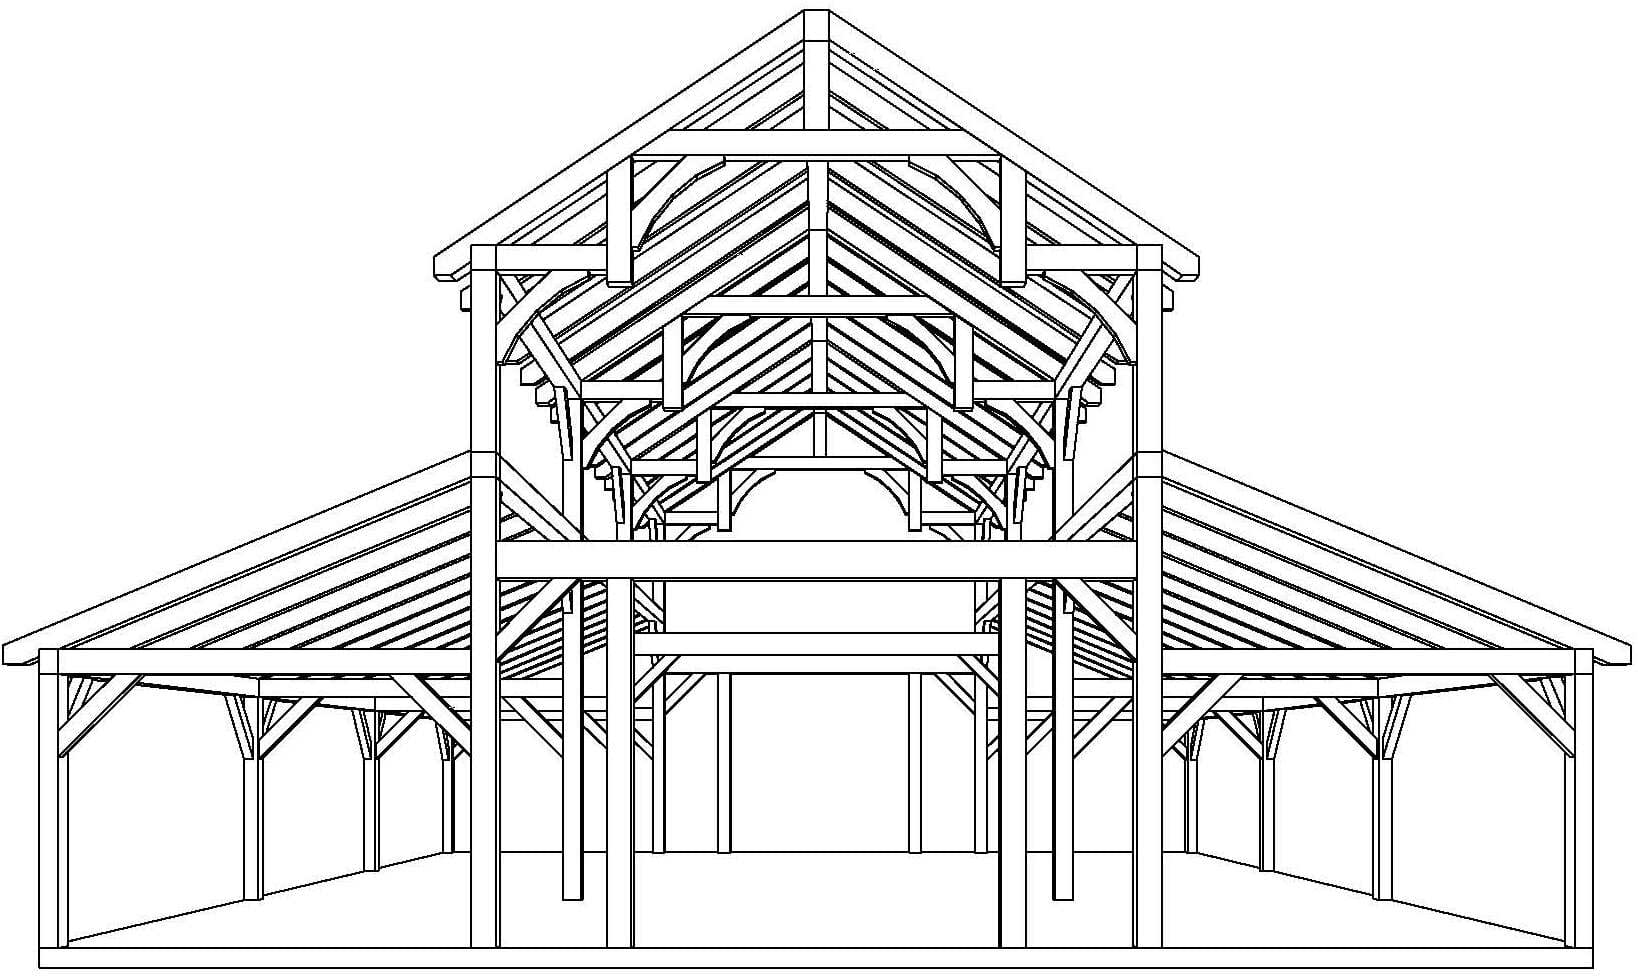 Equipment barn in tx with hemlock frame and curved braces A frame barn plans